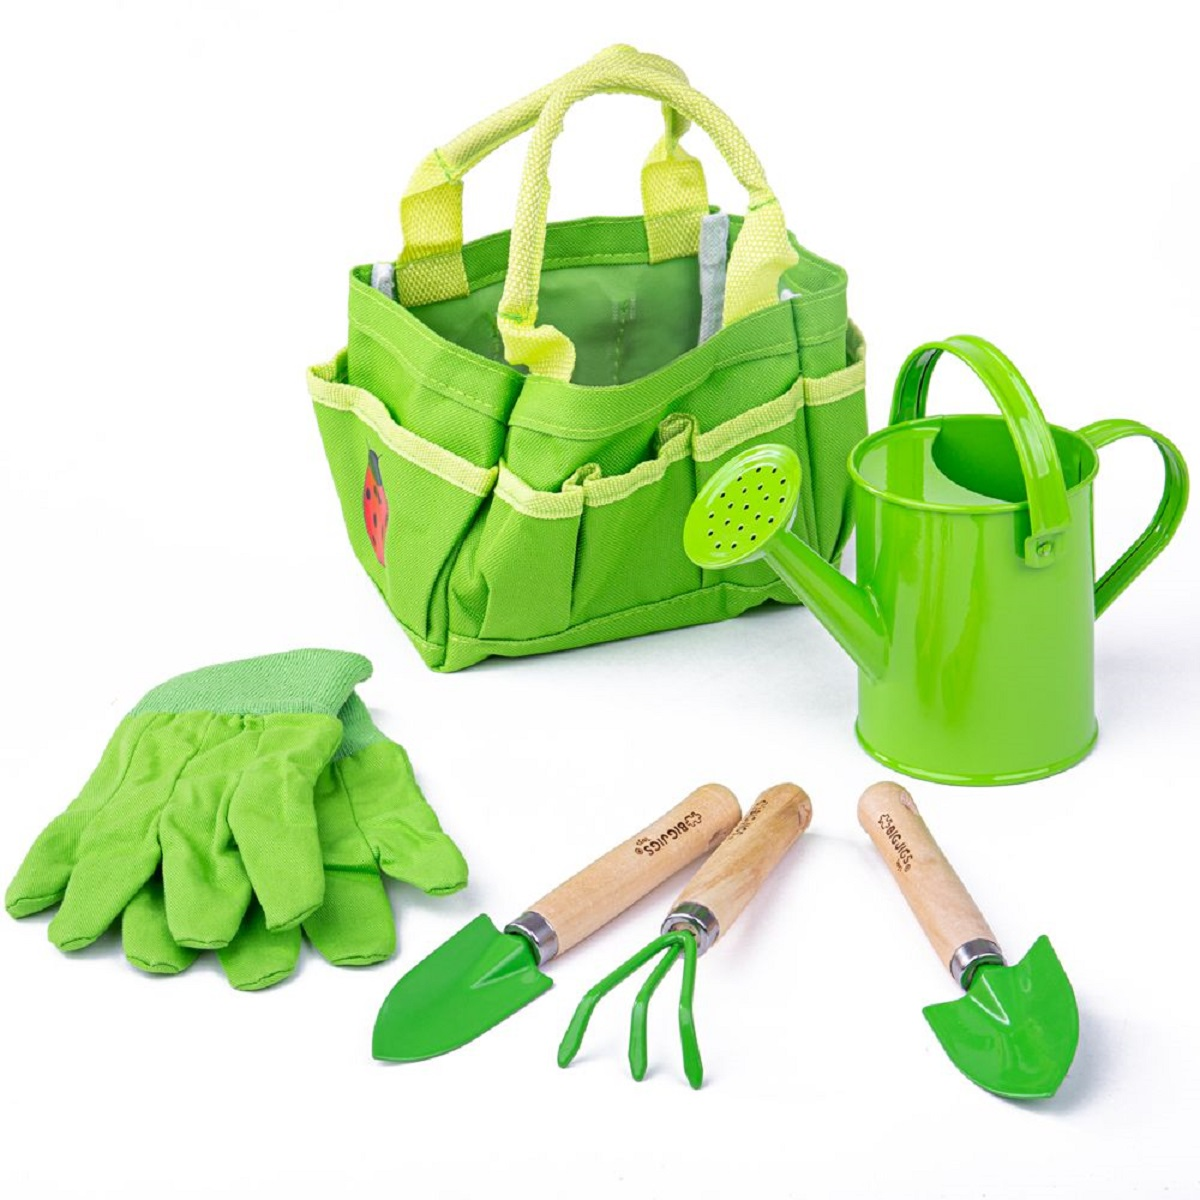 Childrens garden tools watering can kit gardening tools for Tools for backyard gardening